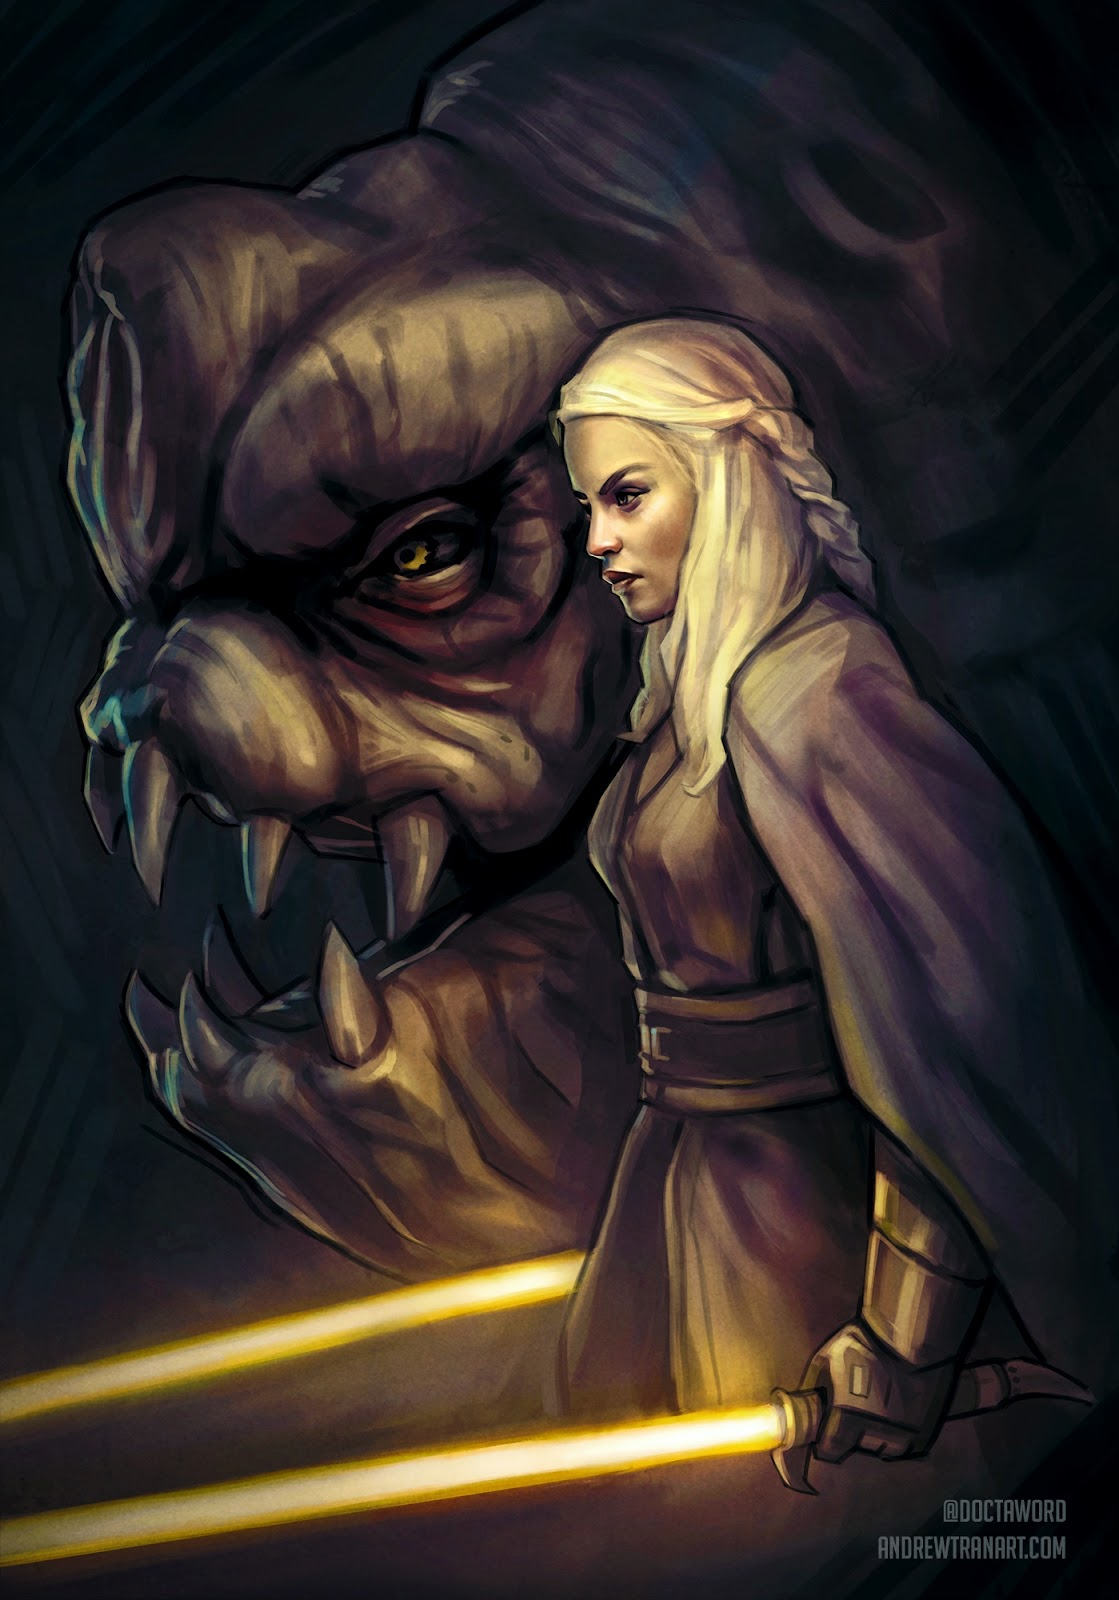 01-Daenerys-Targaryen-Emilia-Clarke-Andrew-D-Tran-Doctaword-Star-Wars-and-Game-of-Thrones-Mashup-www-designstack-co